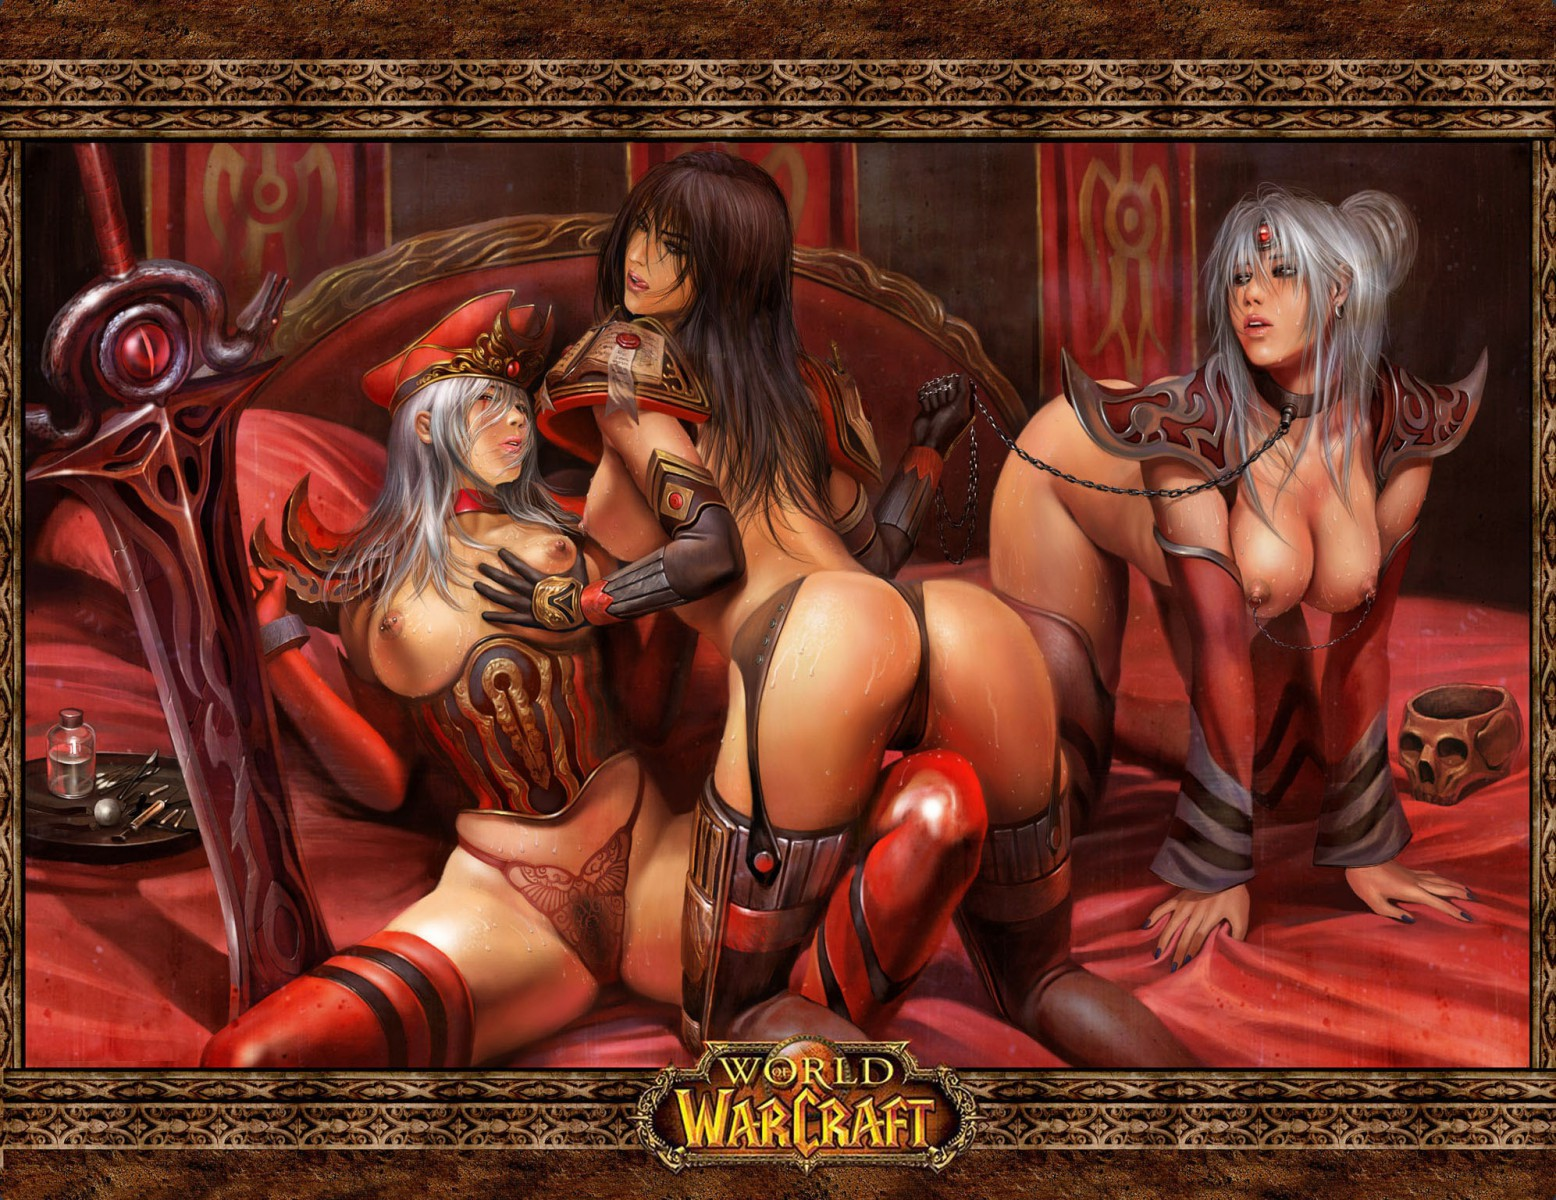 Gallery erotic animation warcraft sexy scenes